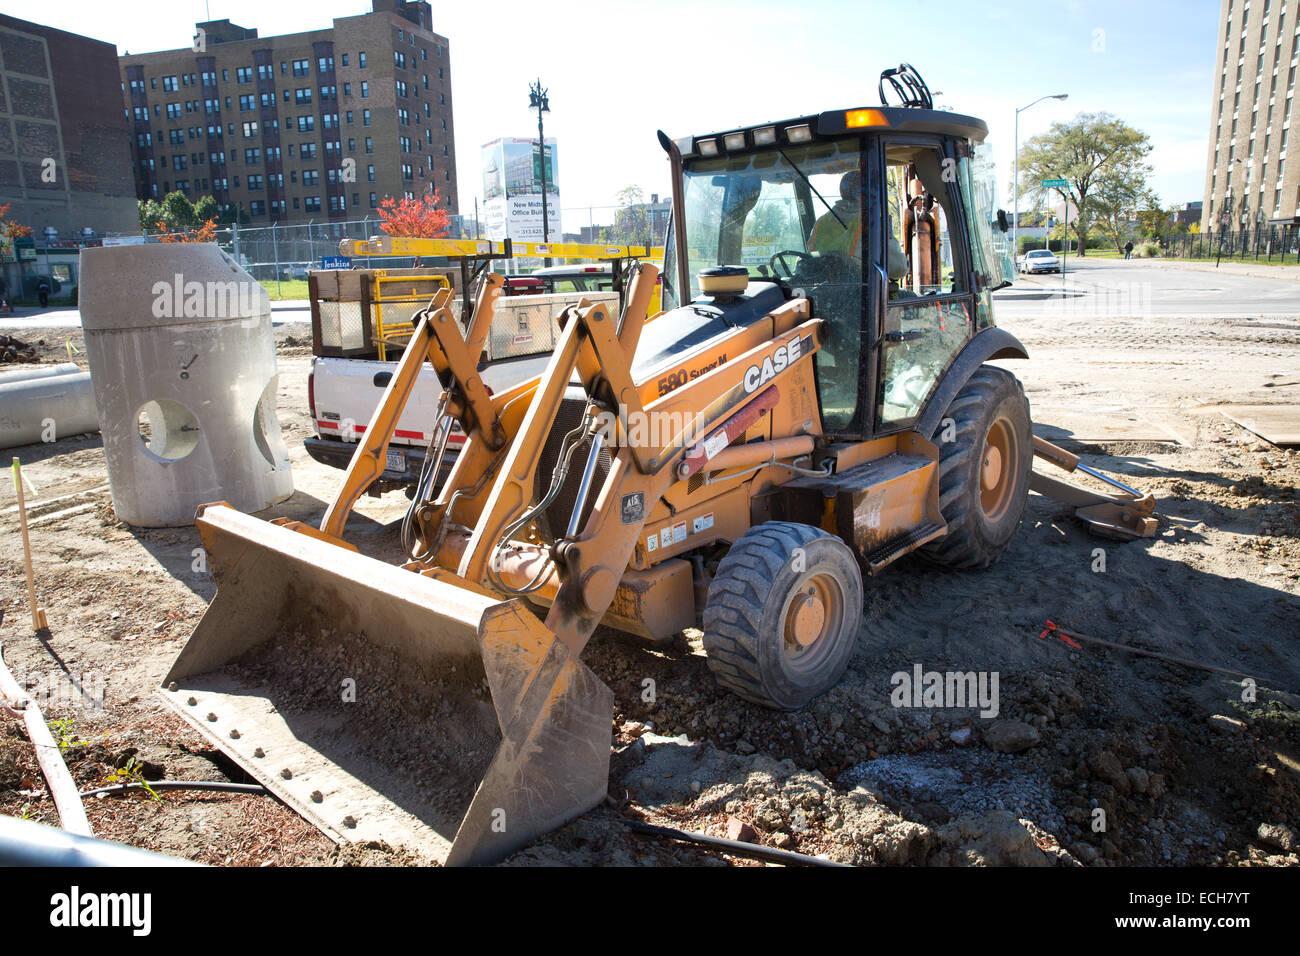 Streetcar project 'M-1 Rail' on Woodward Ave, Detroit, Michigan, USA. Oct. 23, 2014. - Stock Image